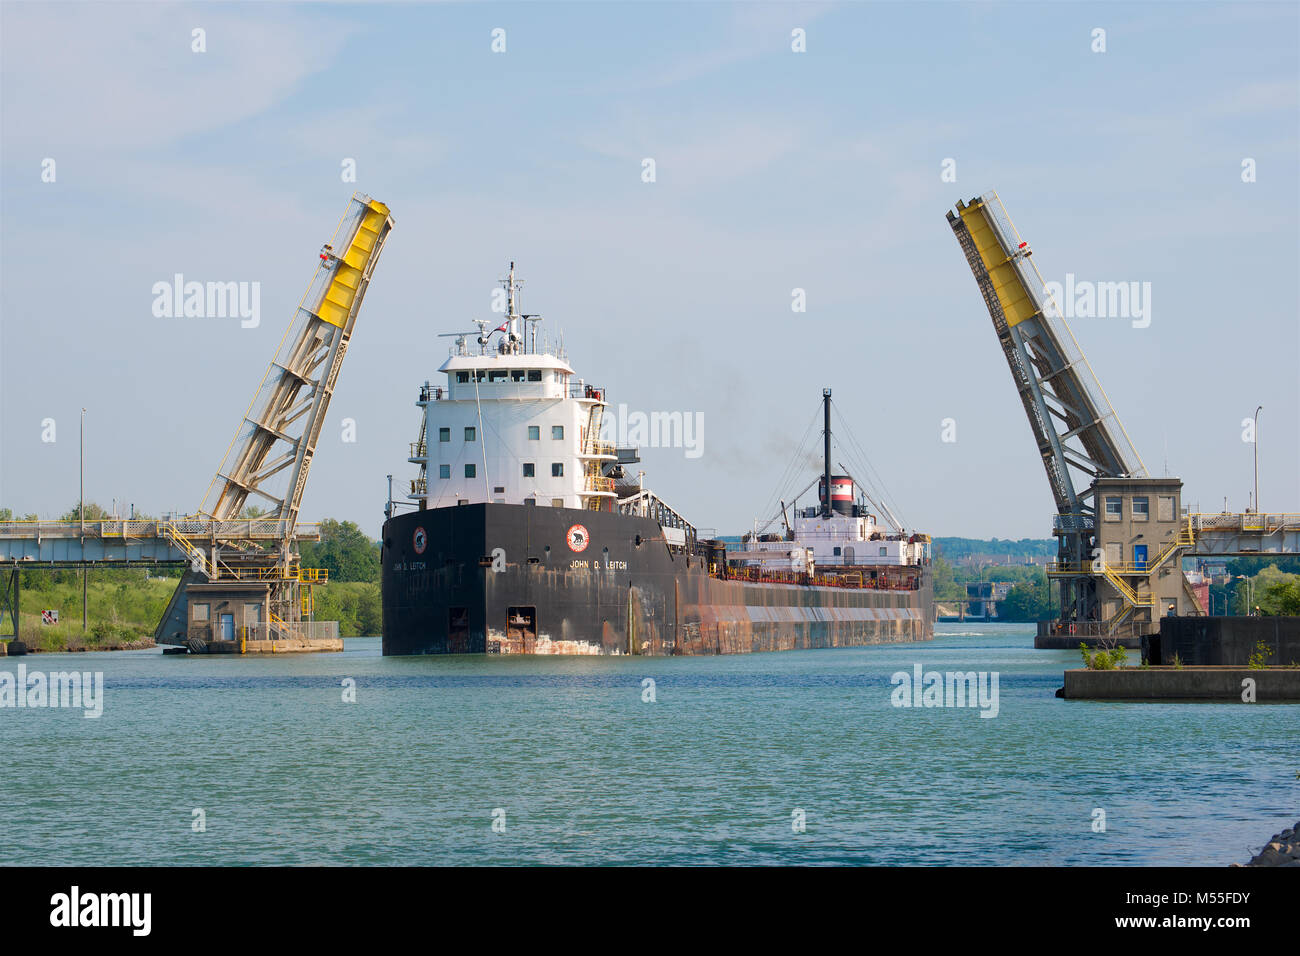 The John D. Leitch self-discharging bulk carrier navigating through the Welland Canal, Ontario, Canada - Stock Image